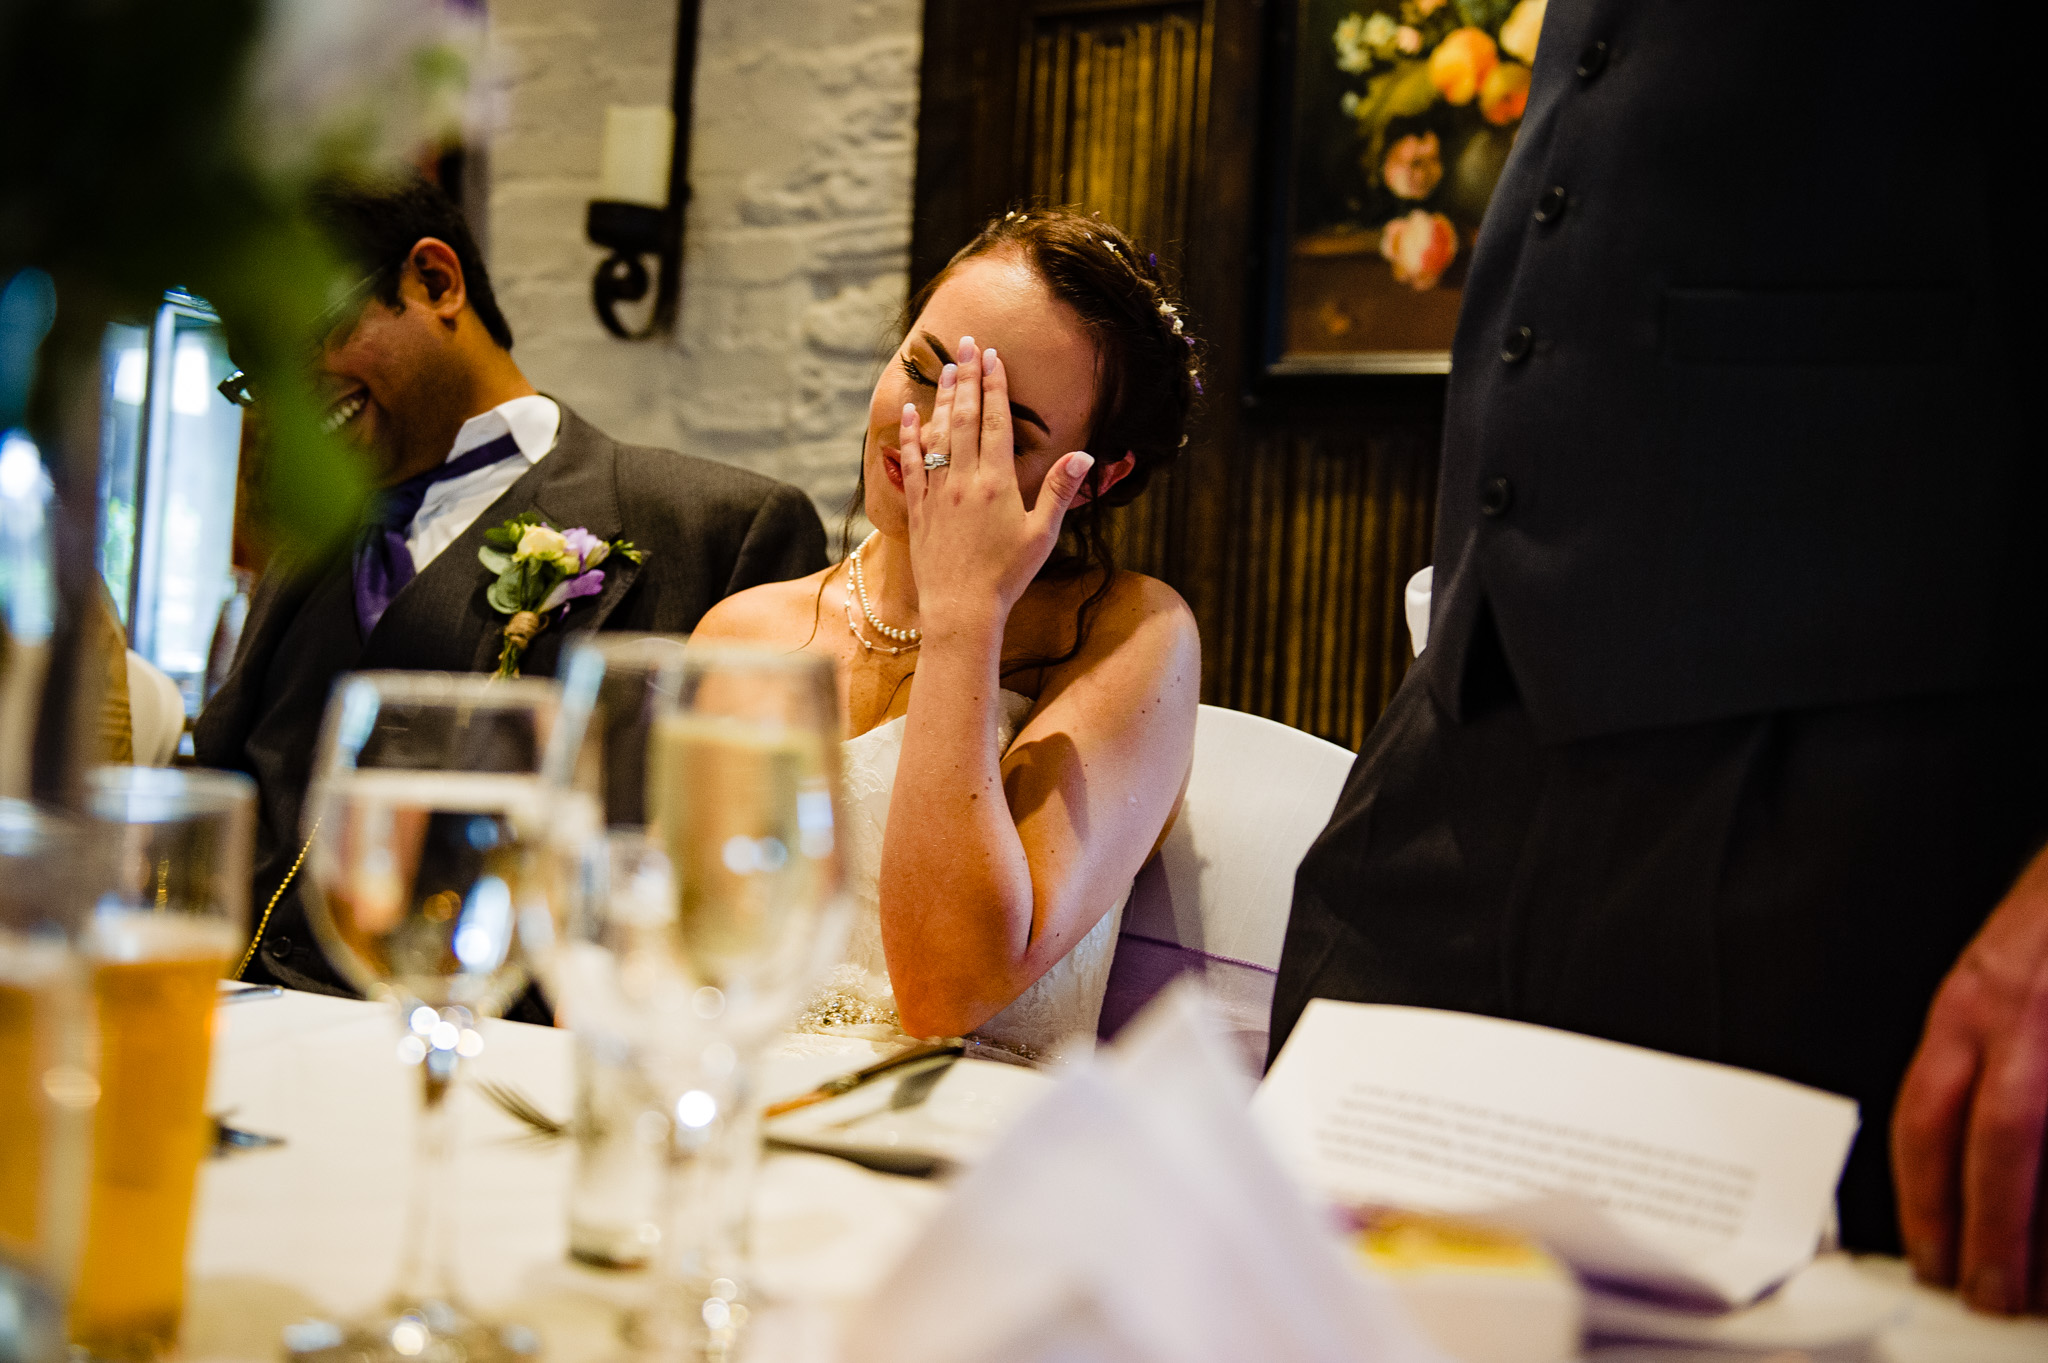 Embarrassing story about the bride